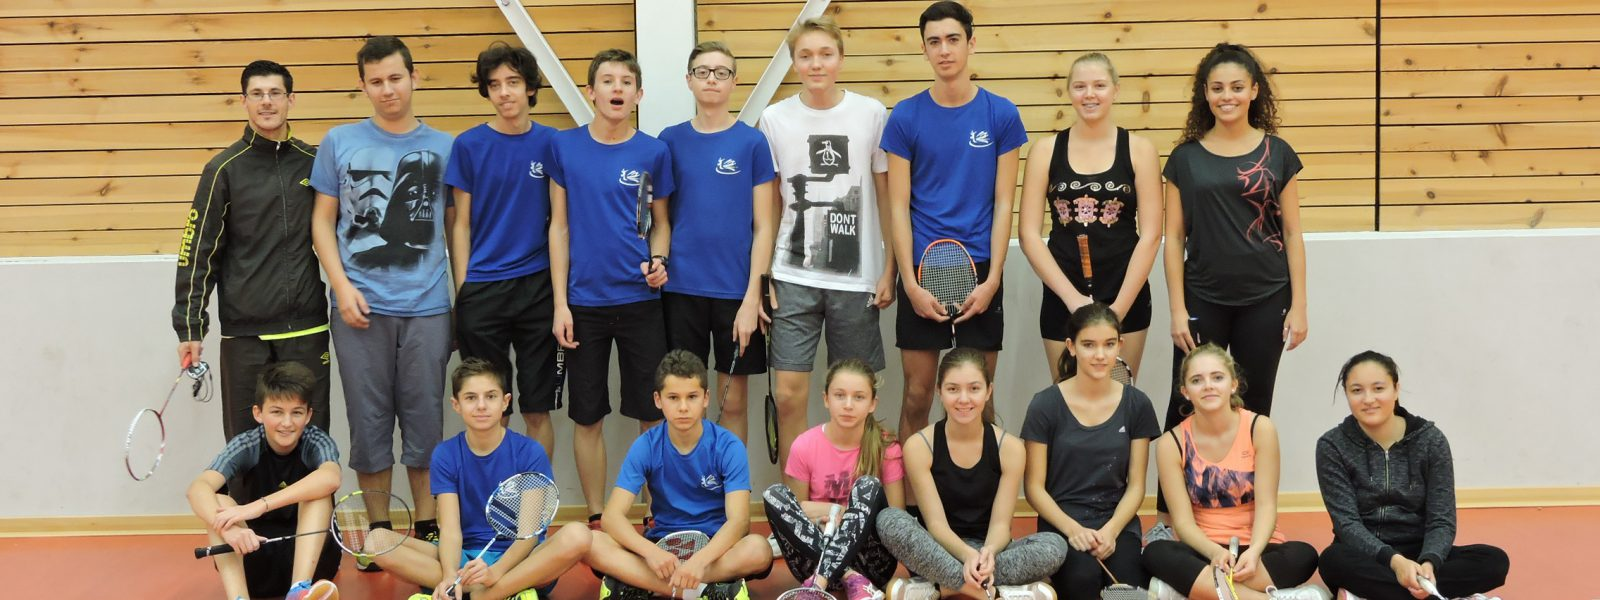 Ecole de bad 2016 : Cadets, Juniors